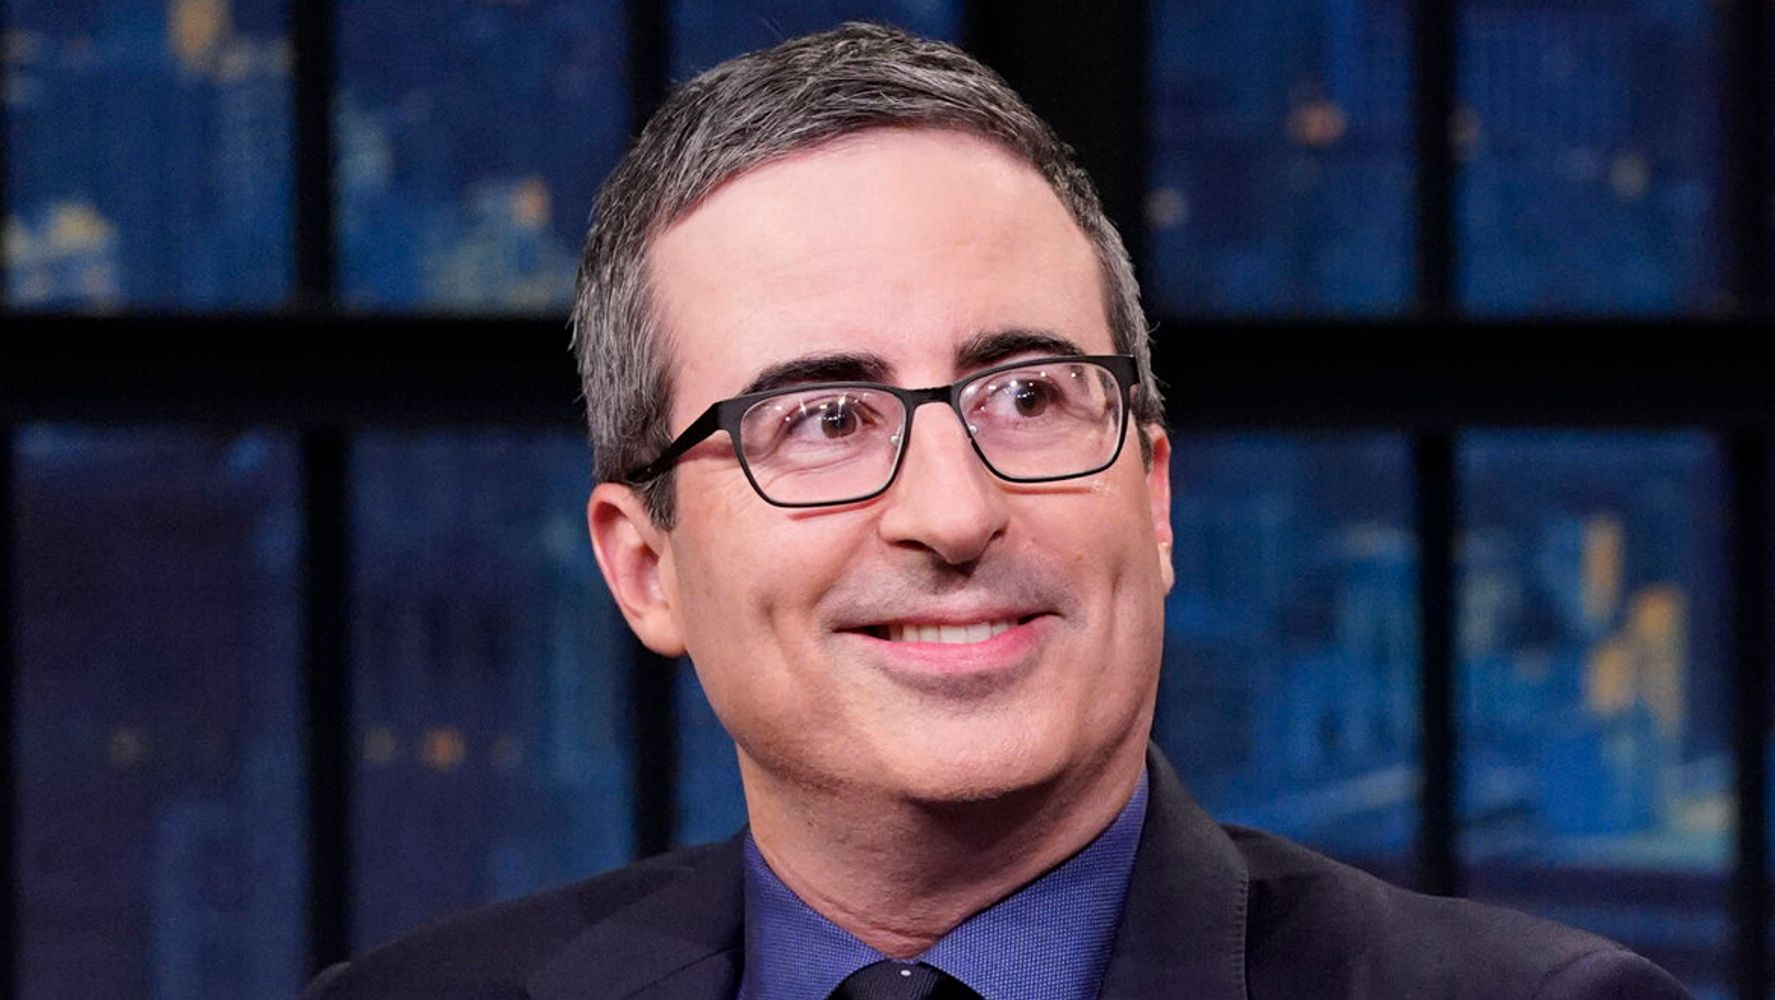 John Oliver Casts His First Vote As A U.S. Citizen: 'I Nearly Burst Into Tears'